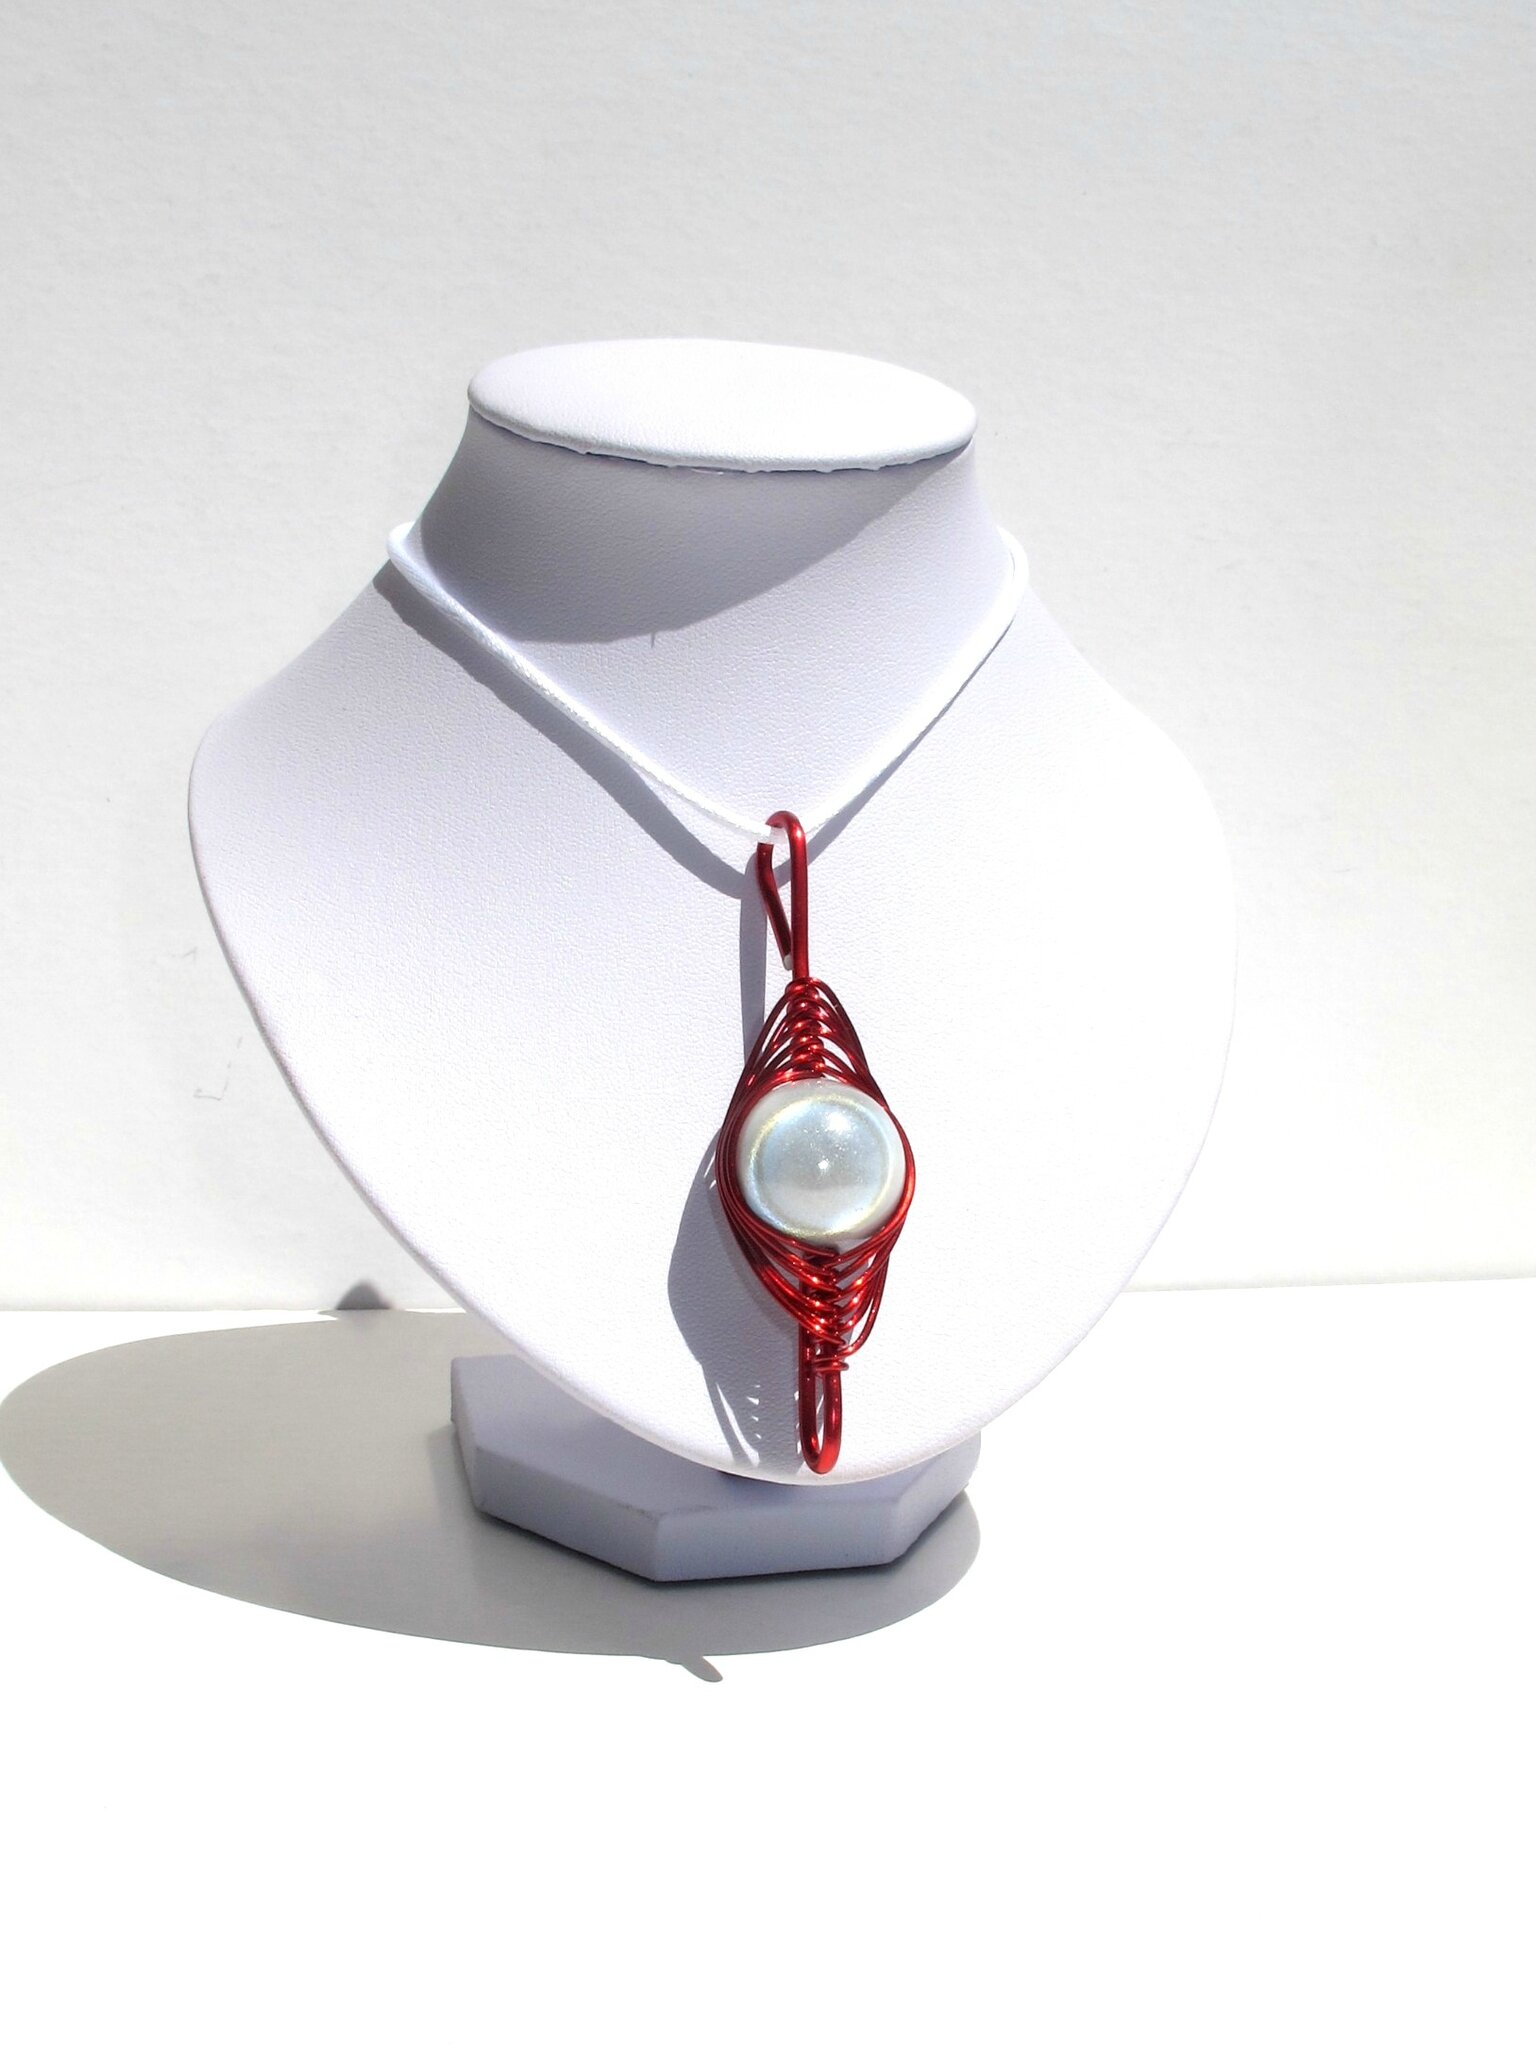 pendentif wire rouge perle blanche buste blanc